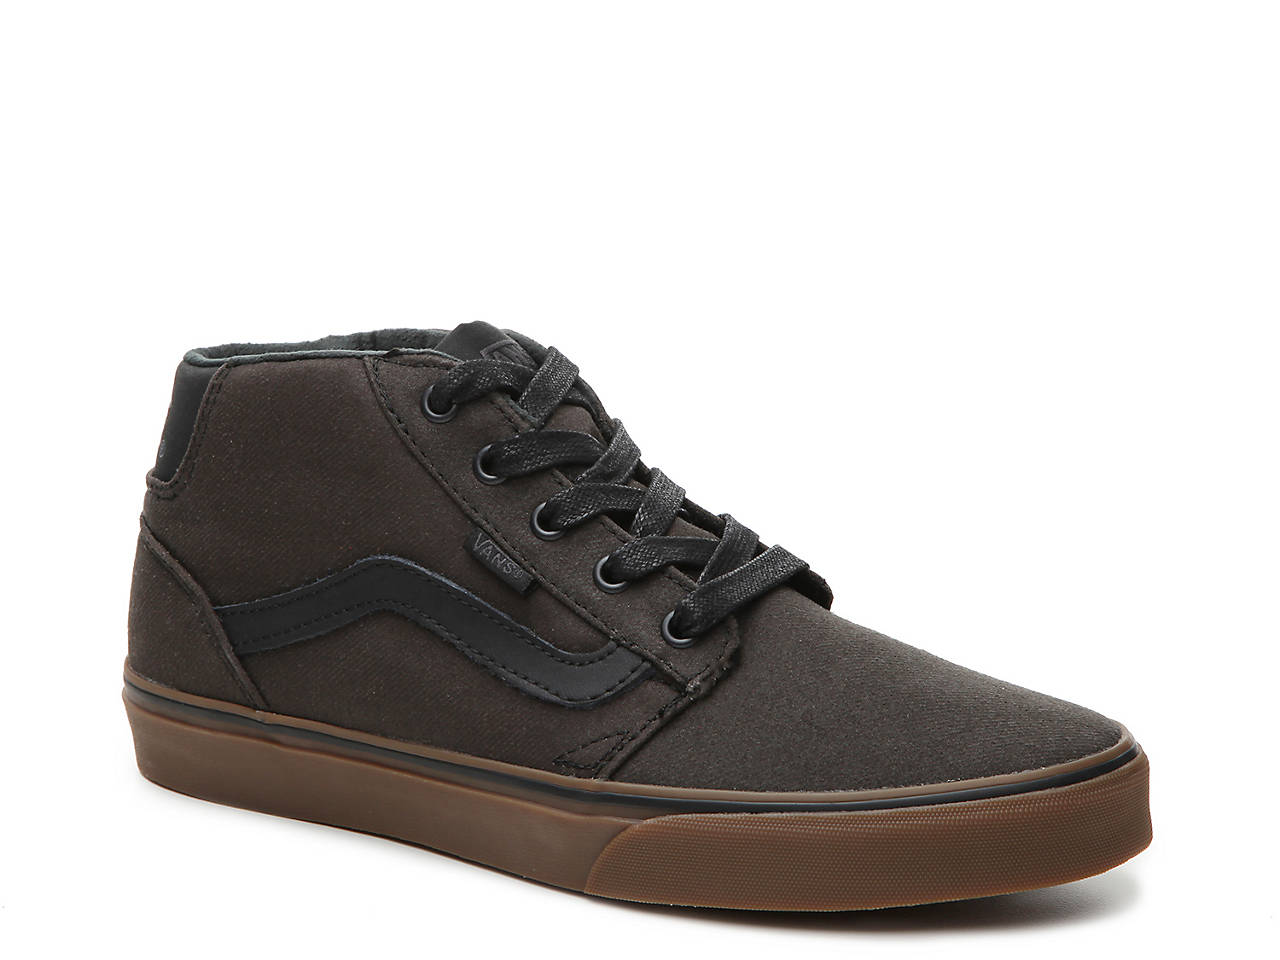 d9456384e05e2 Vans Chapman Mid-Top Sneaker - Men s Men s Shoes